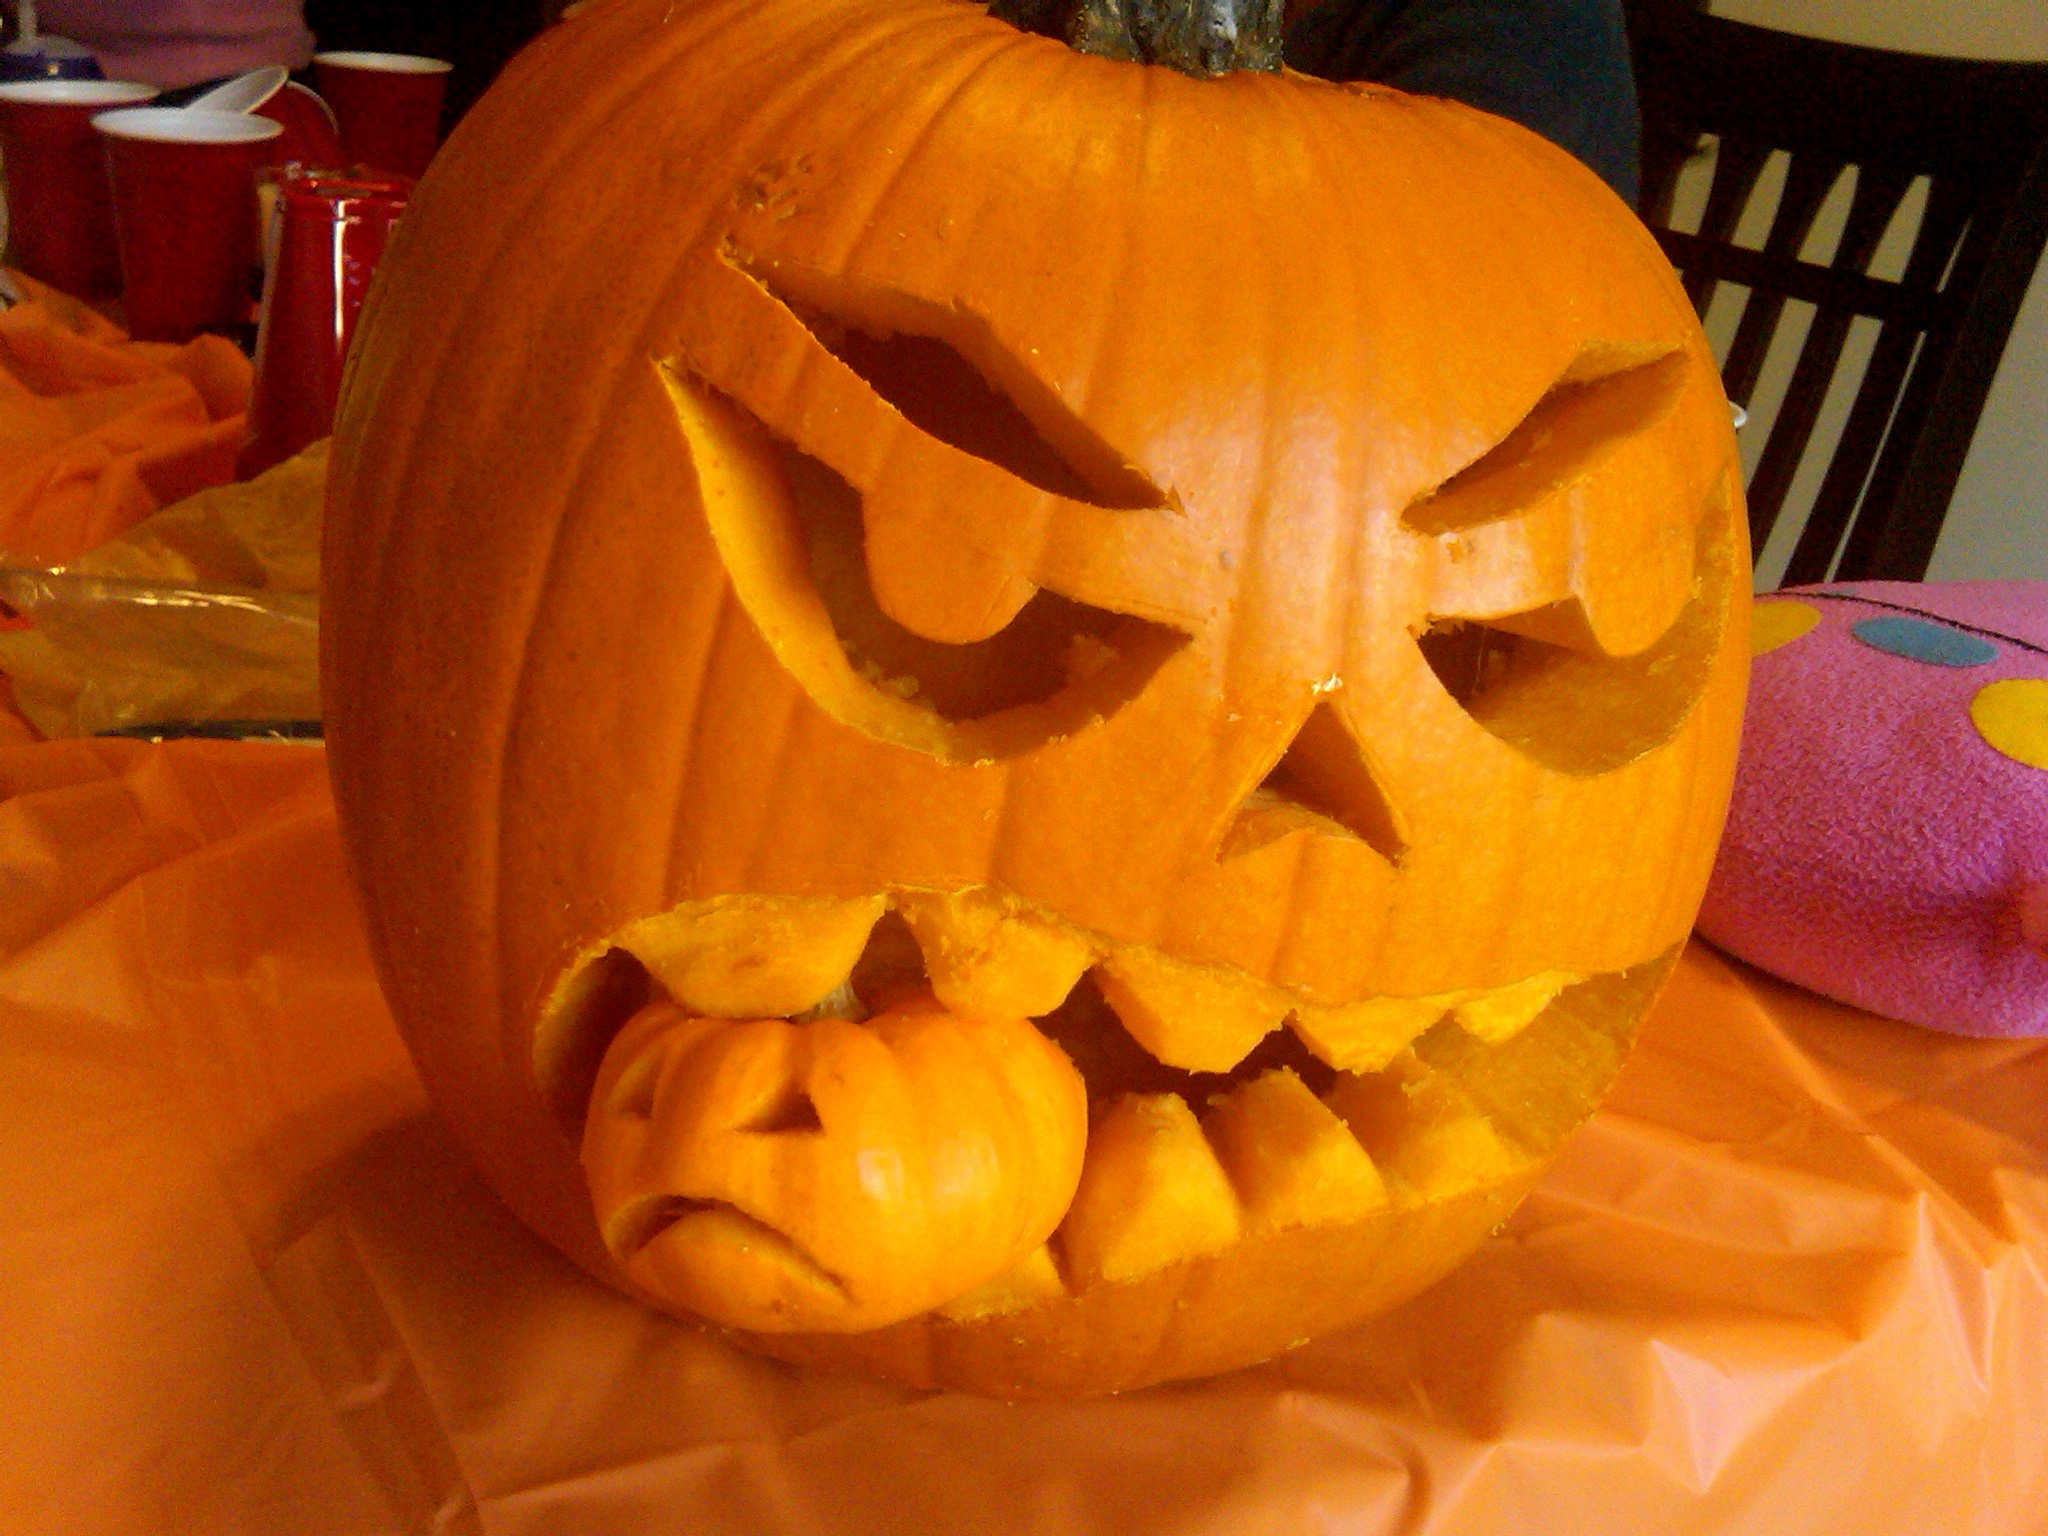 Pumpkin Carving Templates Scary - Free Printable Scary Pumpkin Patterns